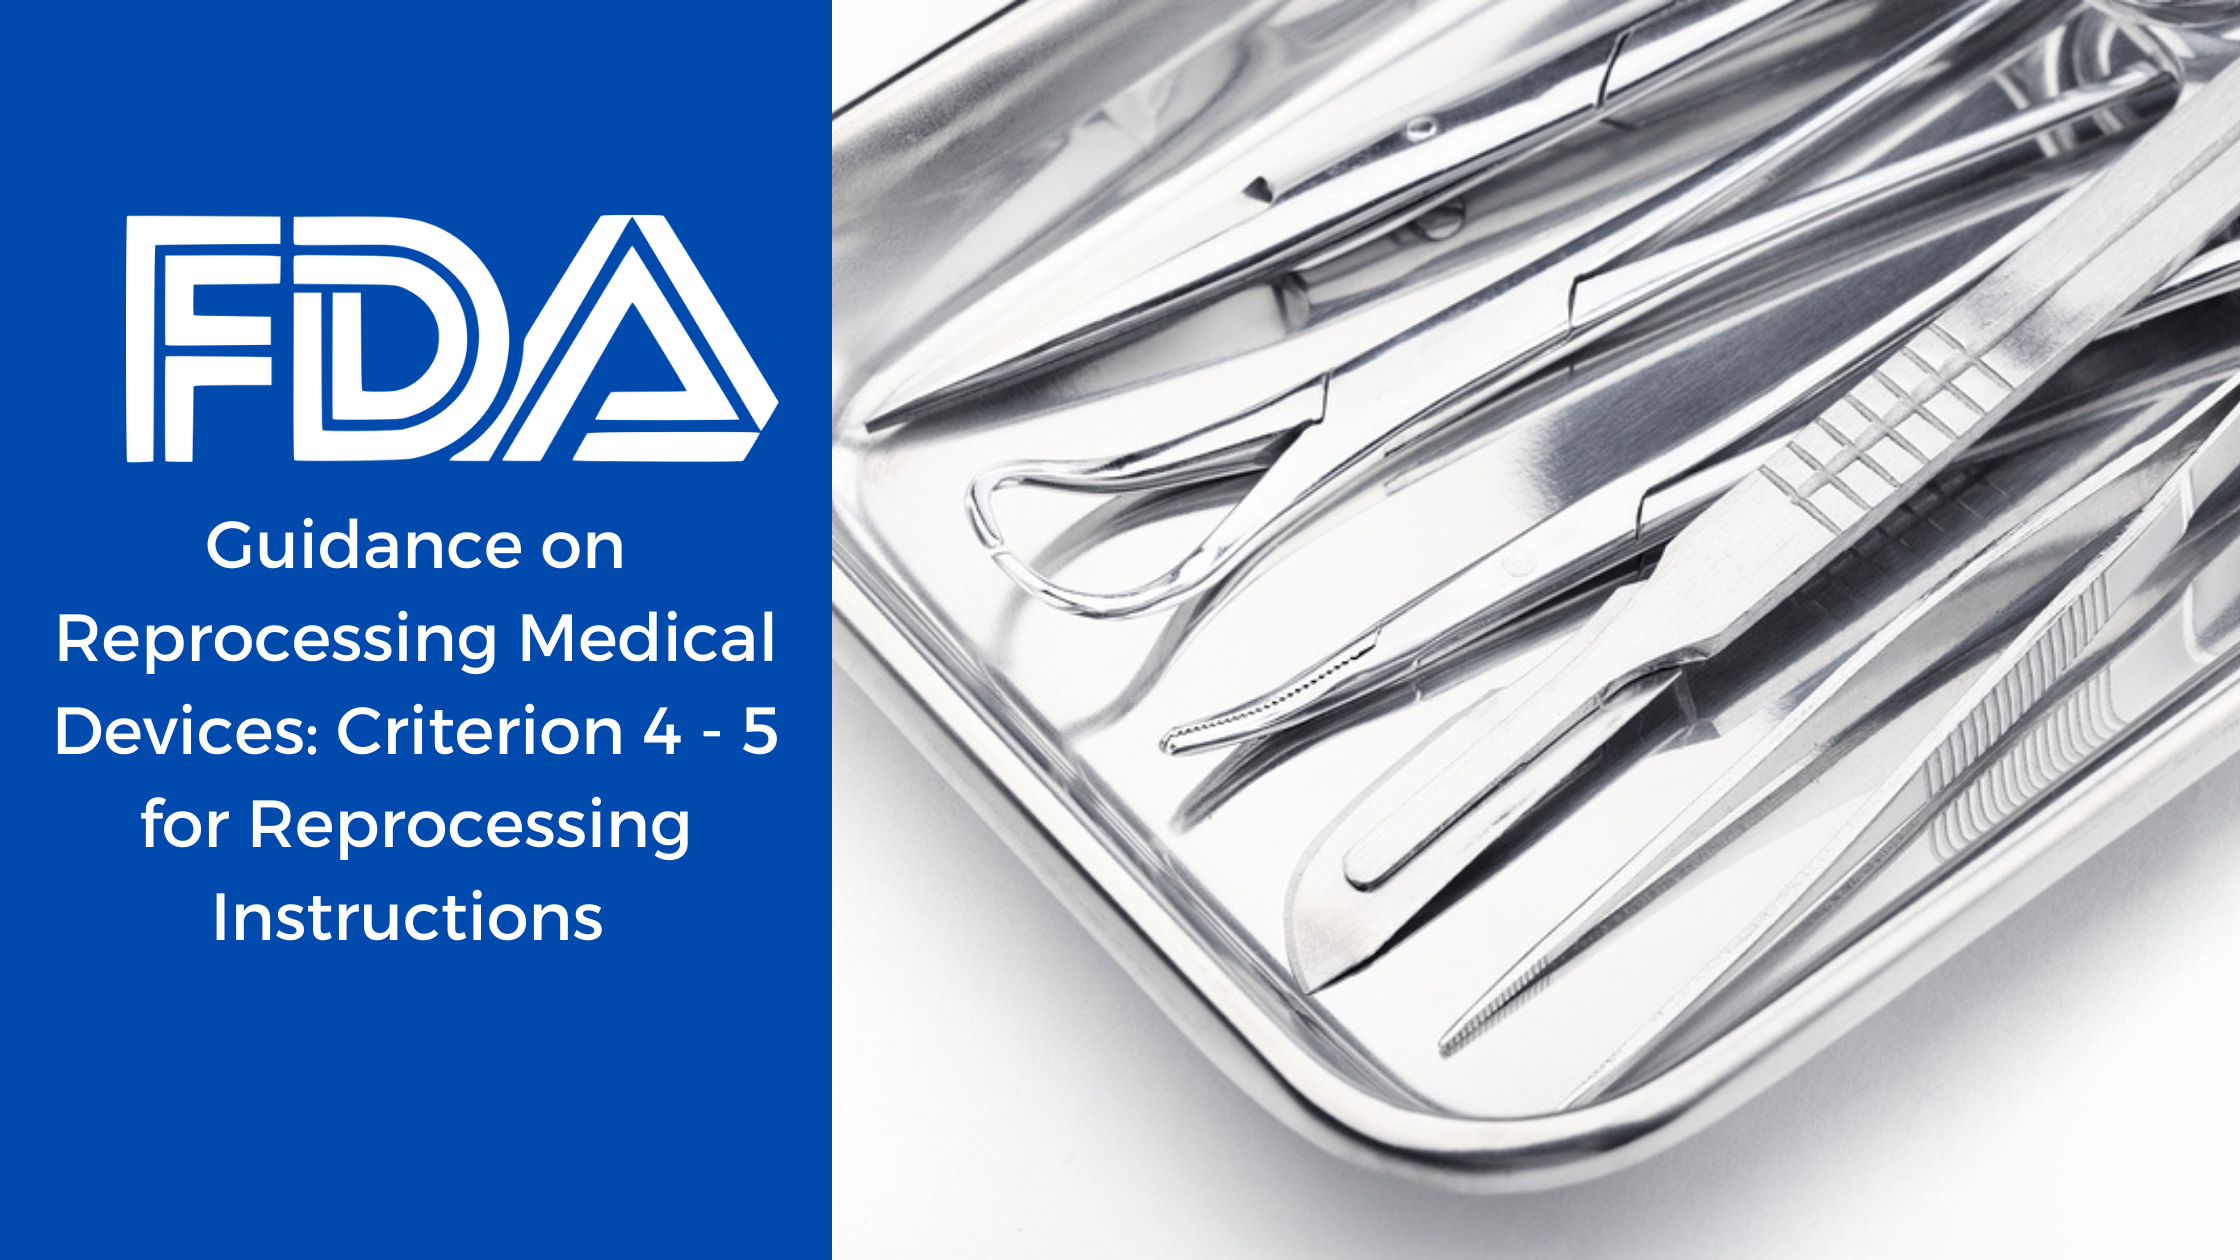 FDA Guidance on Reprocessing Medical Devices Criterion 4  5 for Reprocessing Instructions